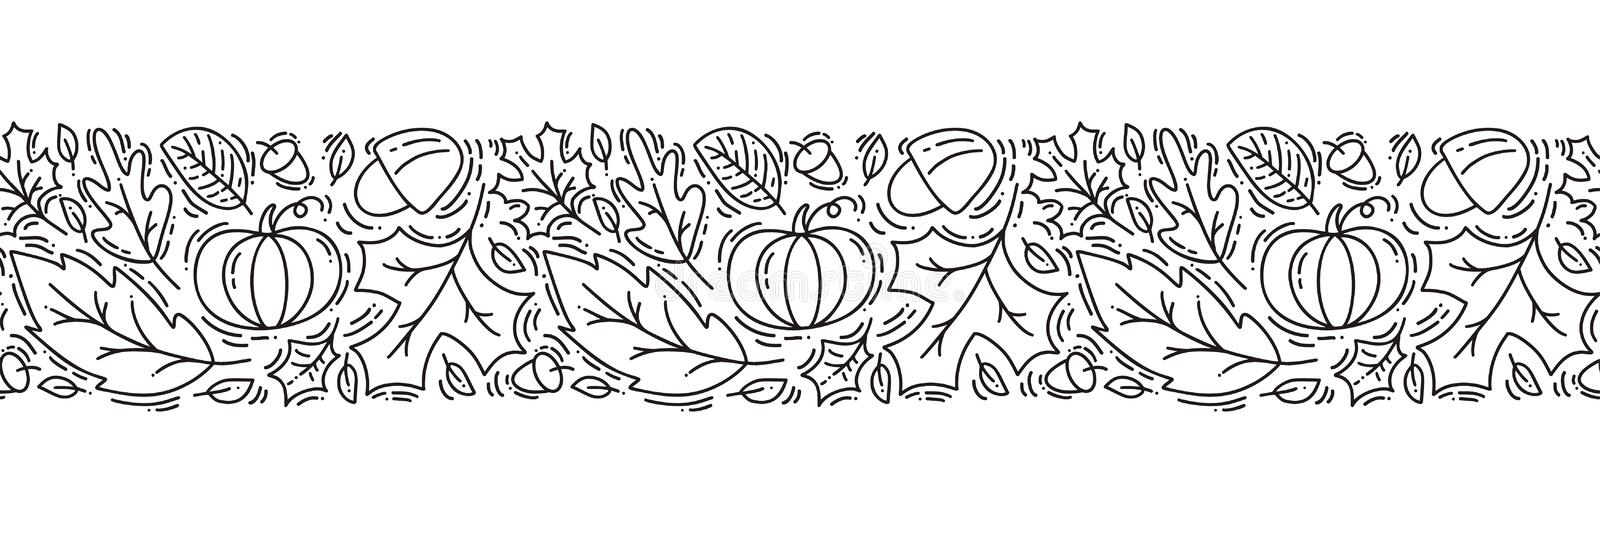 Seamless pattern ornament monoline with acorns, pumpkin and autumn oak leaves in black. Perfect for wallpaper, gift paper fill,. Web page background, autumn vector illustration